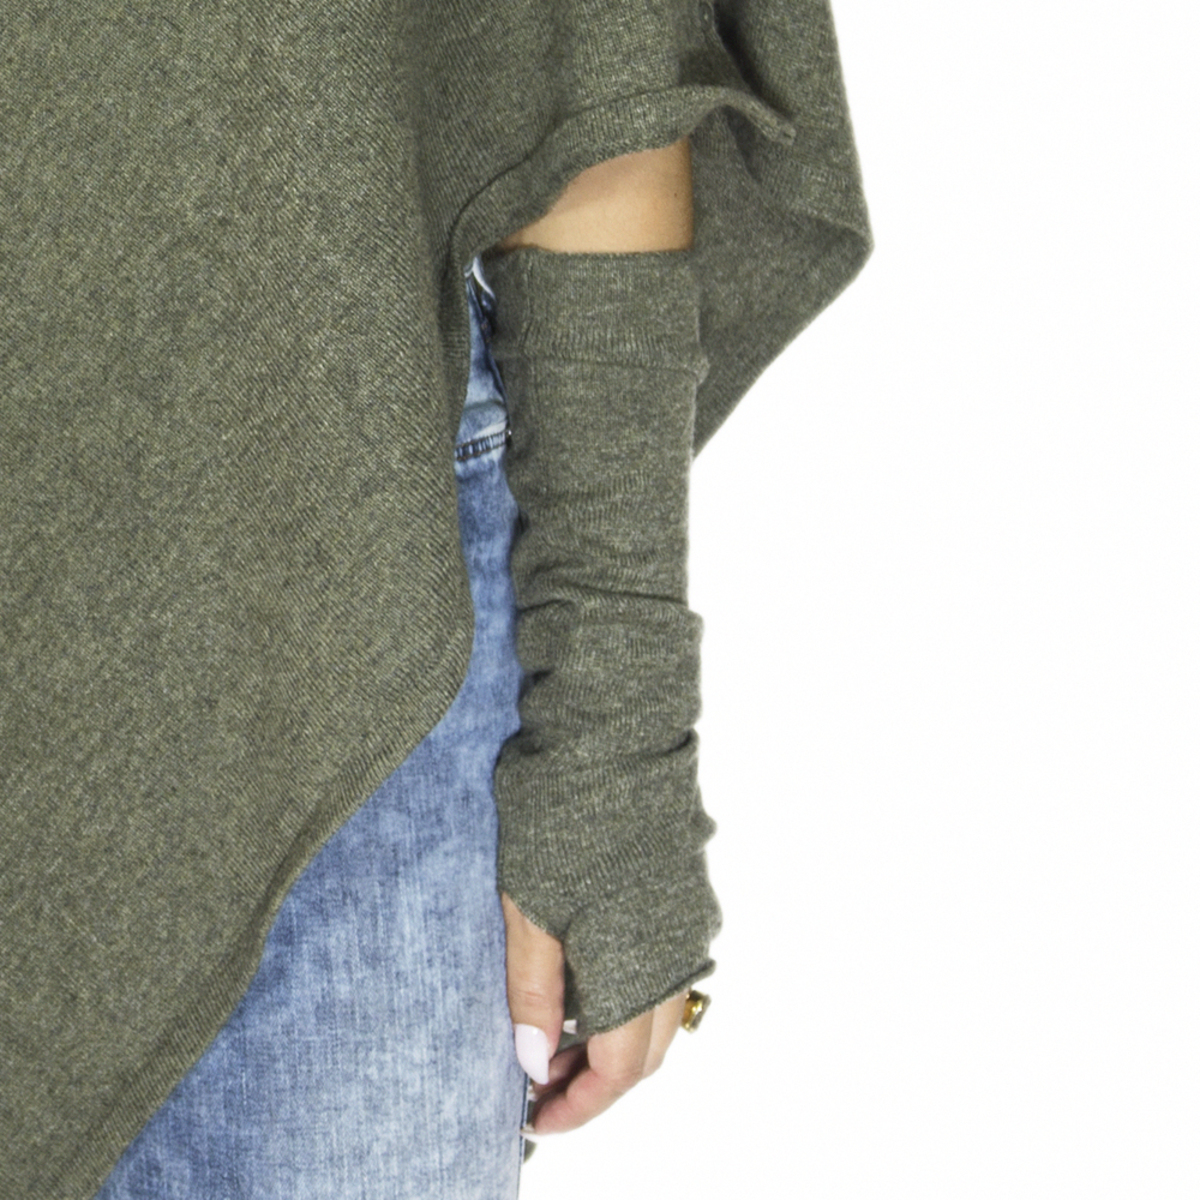 Lisa Yang Armvärmare Army Green 100% Cashmere - DAYSTYLE 96cc93bc622e5